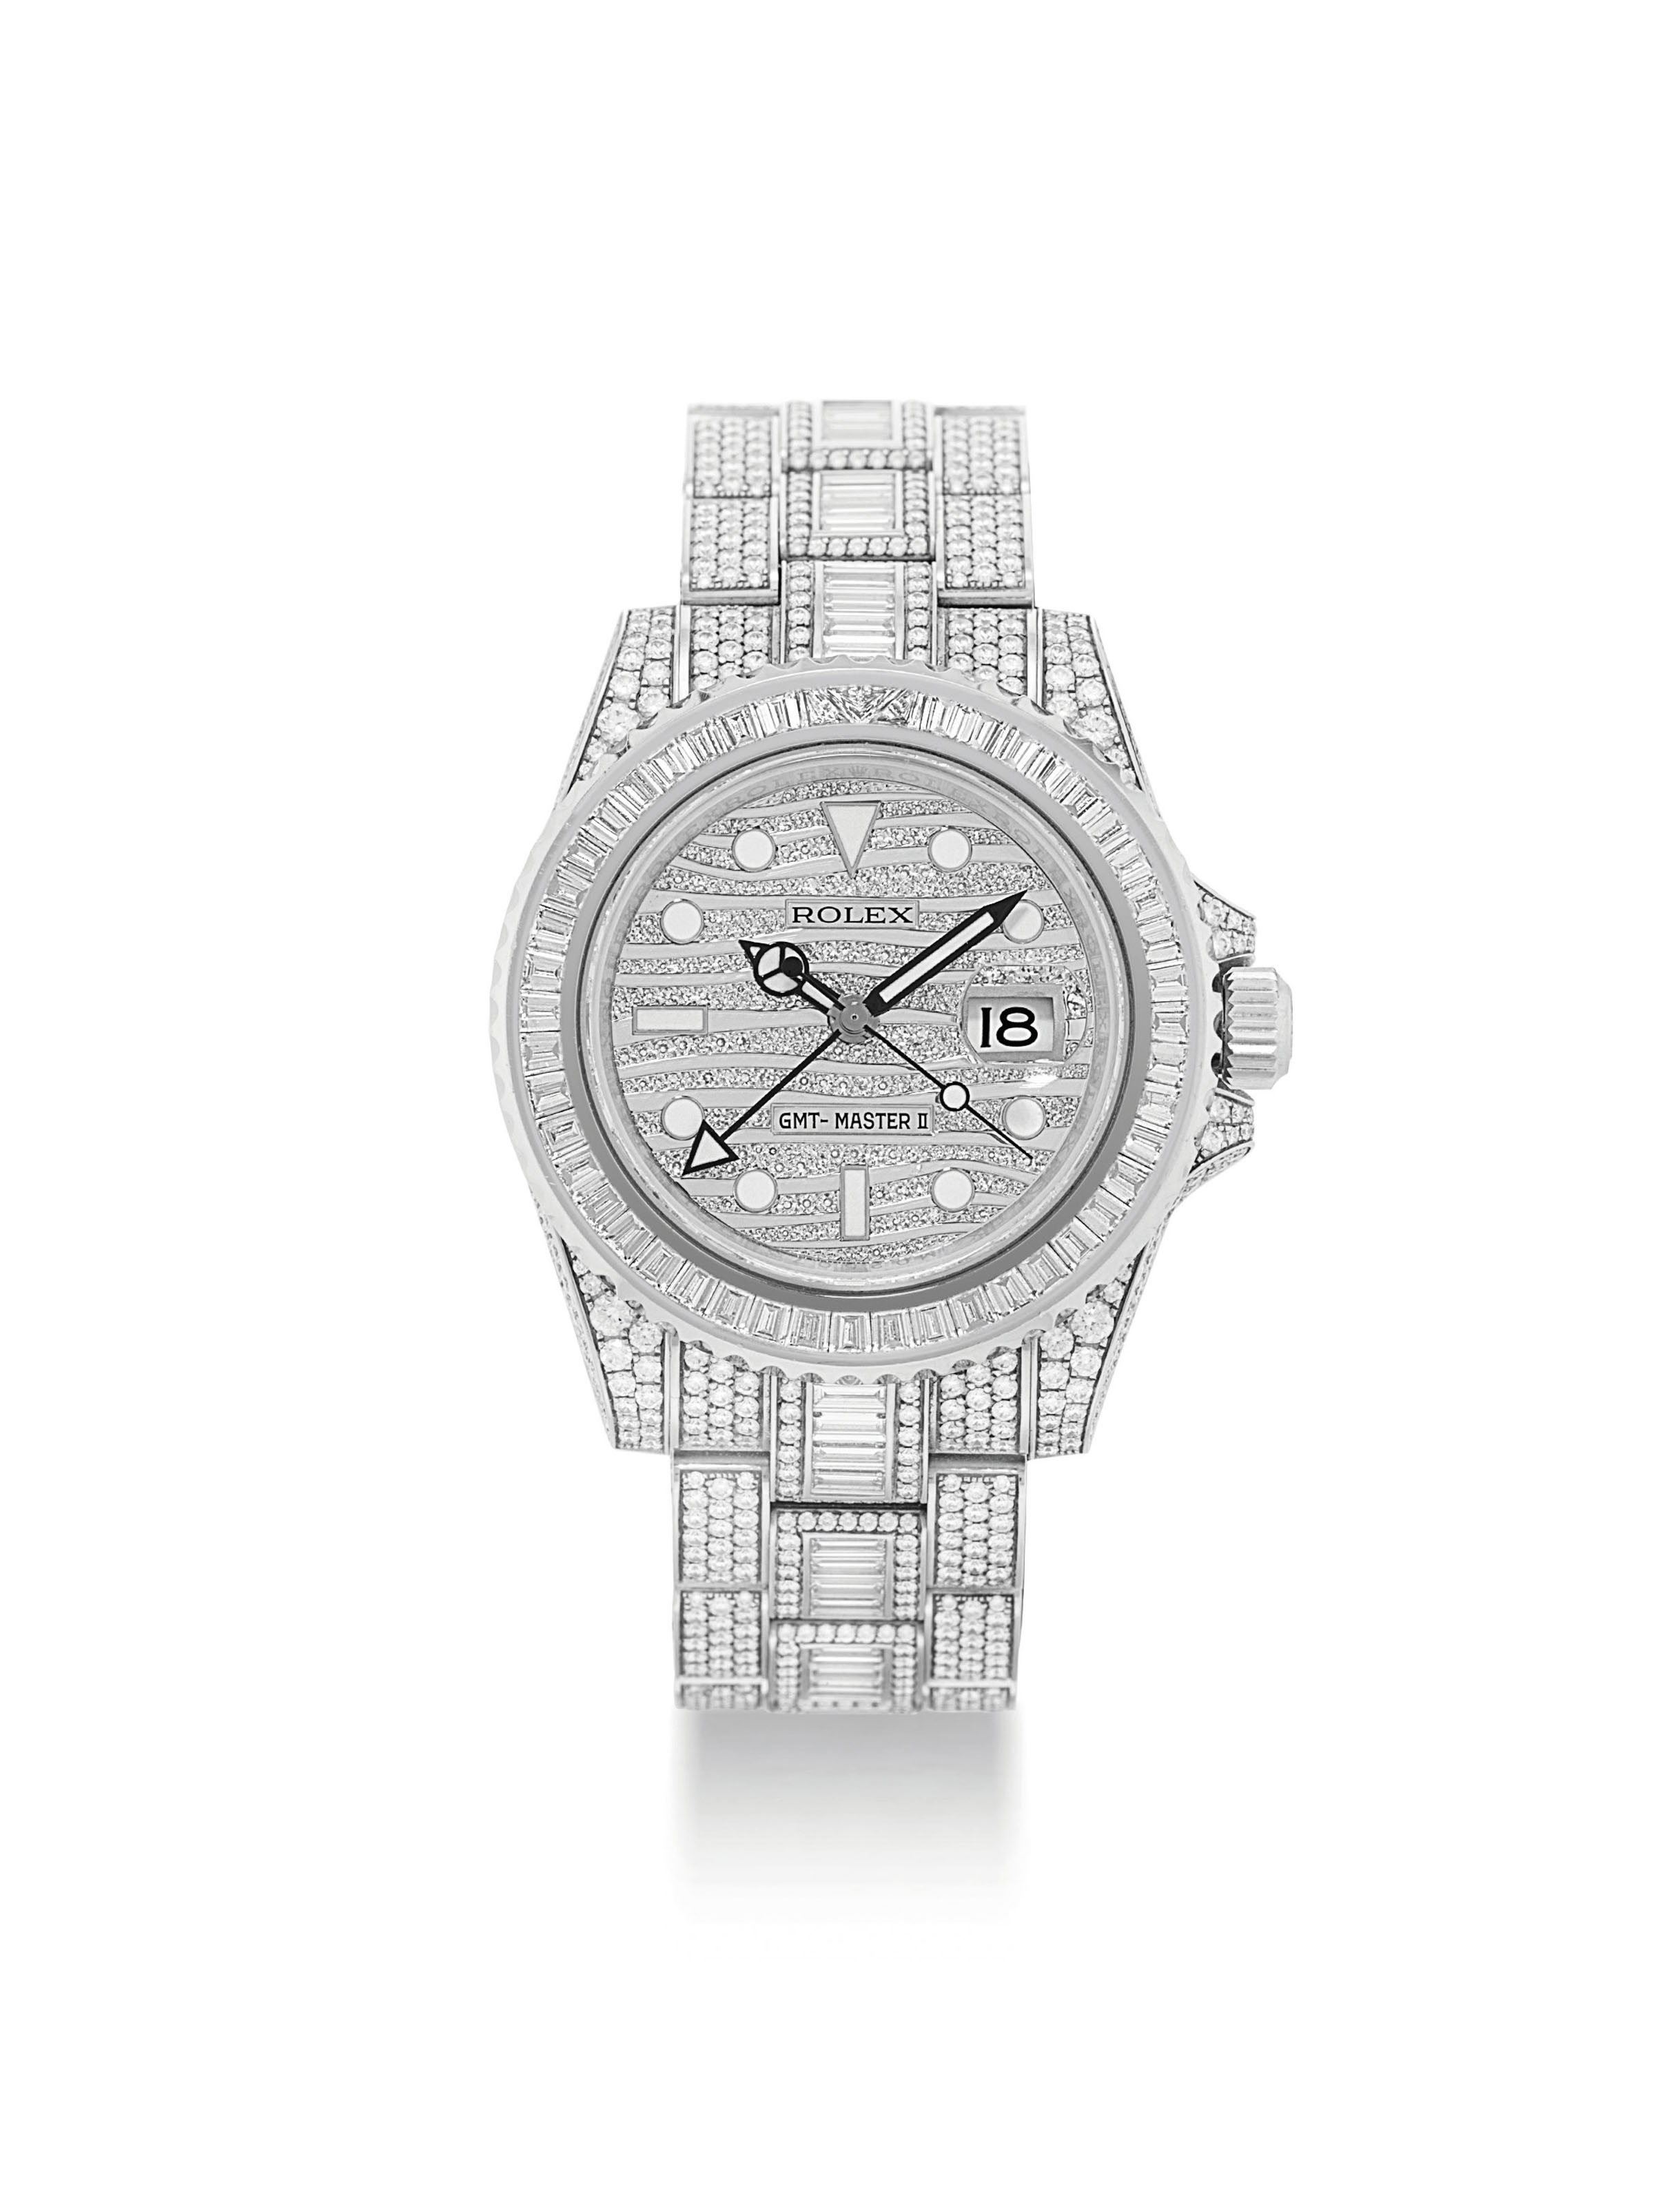 ROLEX. AN IMPRESSIVE AND VERY RARE 18K WHITE GOLD AND DIAMOND-SET AUTOMATIC DUAL TIME WRISTWATCH WITH SWEEP CENTRE SECONDS, DATE AND BRACELET